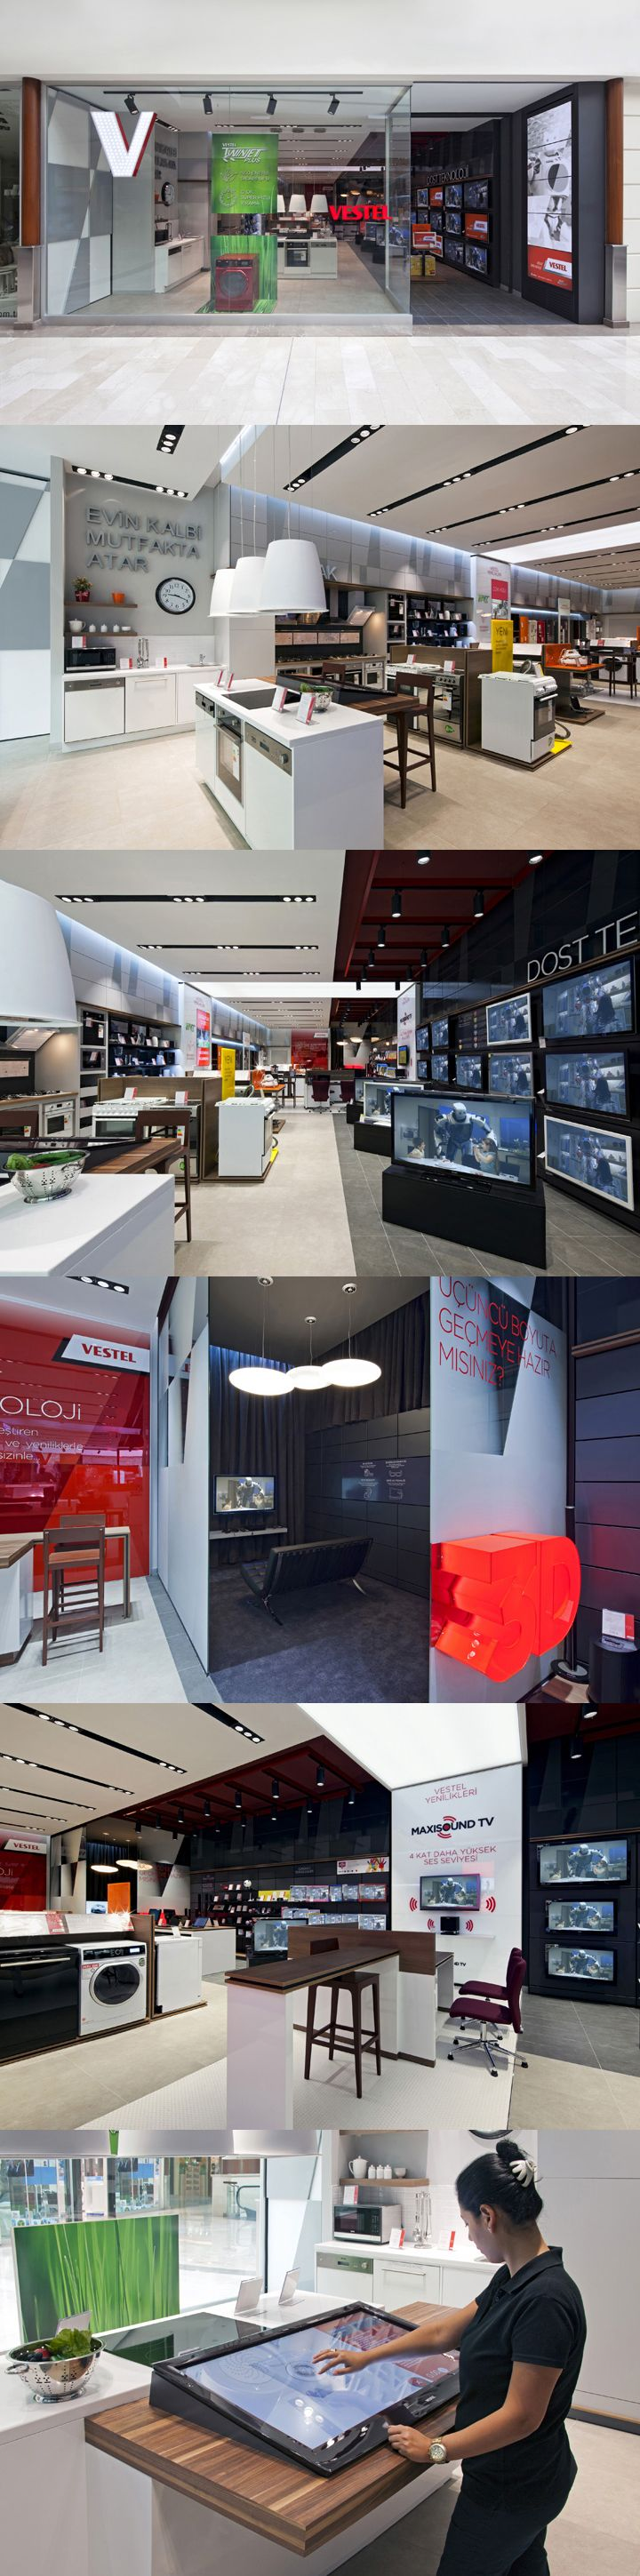 Store by riis retail aarhus denmark 187 retail design blog - Vestel Appliances Store